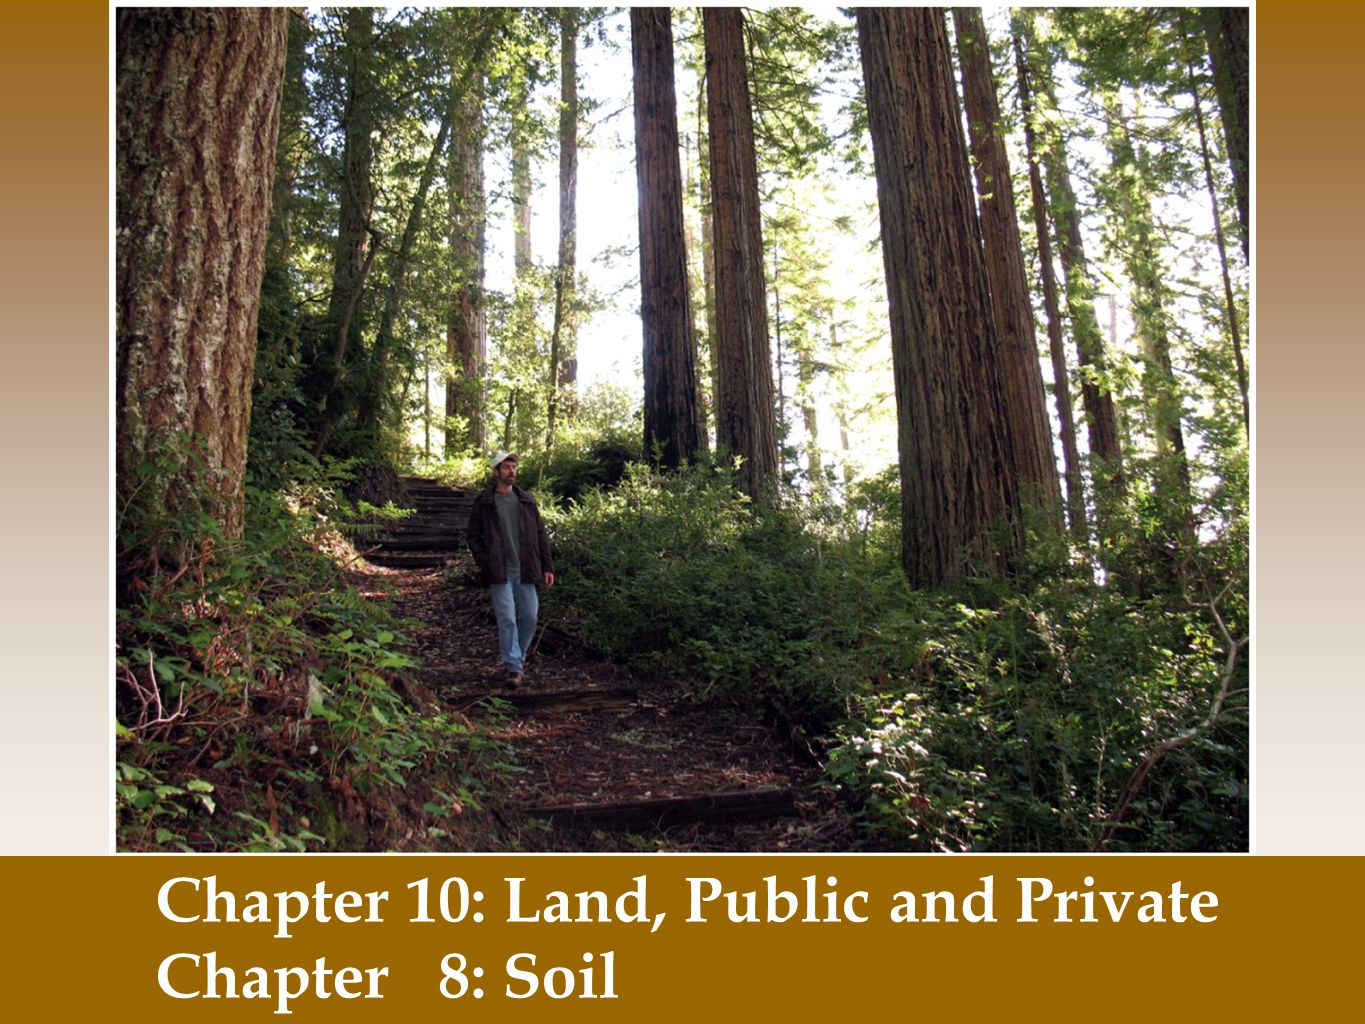 Chapter 10: Land, Public and Private Chapter 8: Soil